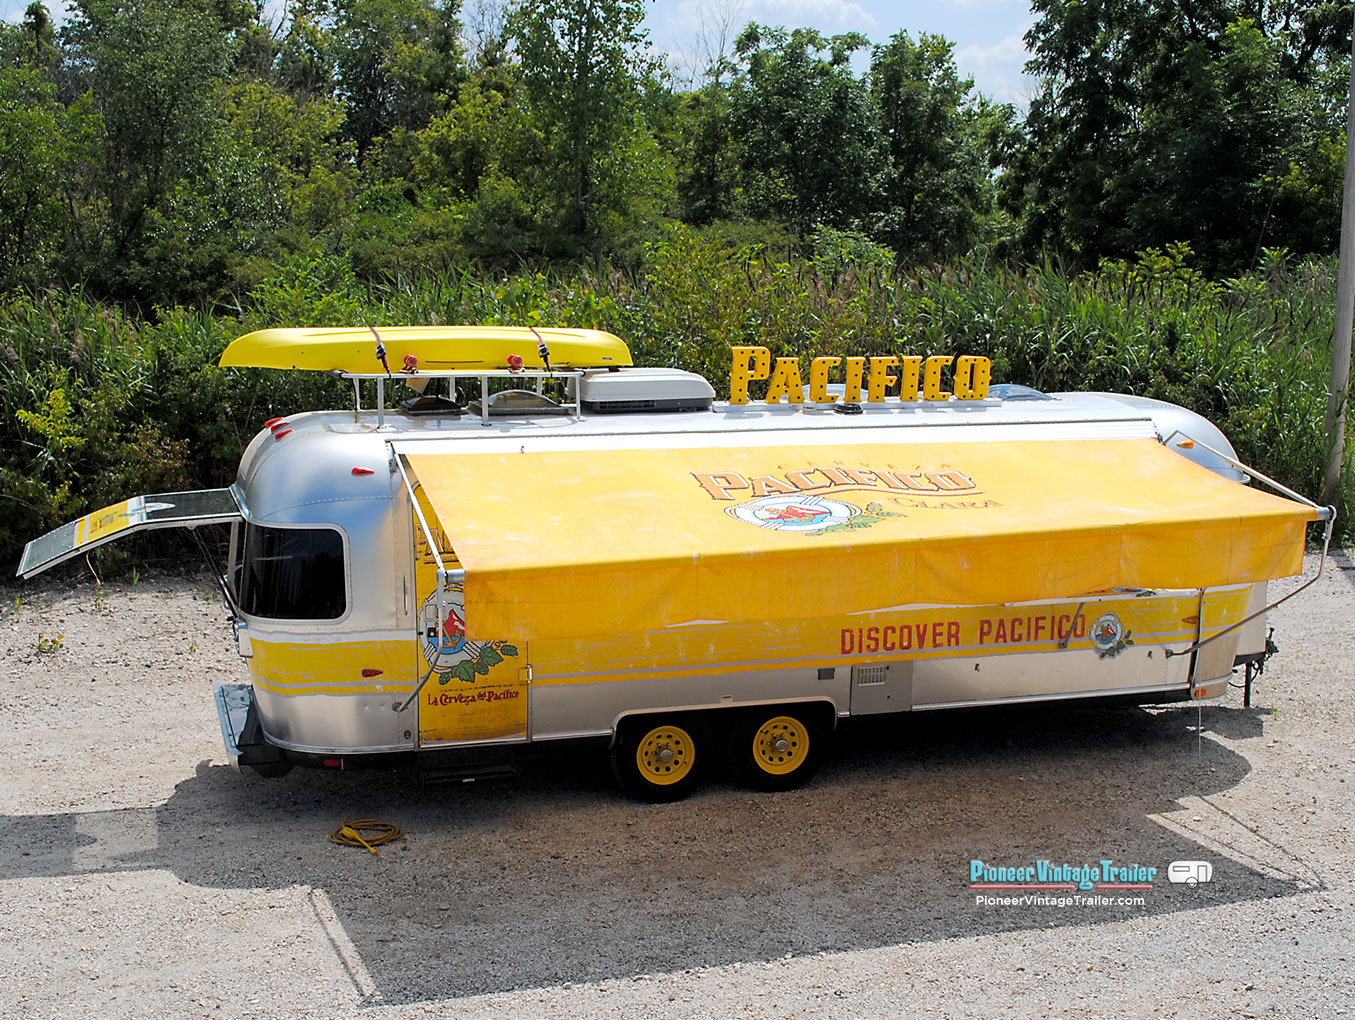 Pacifico Beer Marketing Vending Trailers Pioneer Vintage